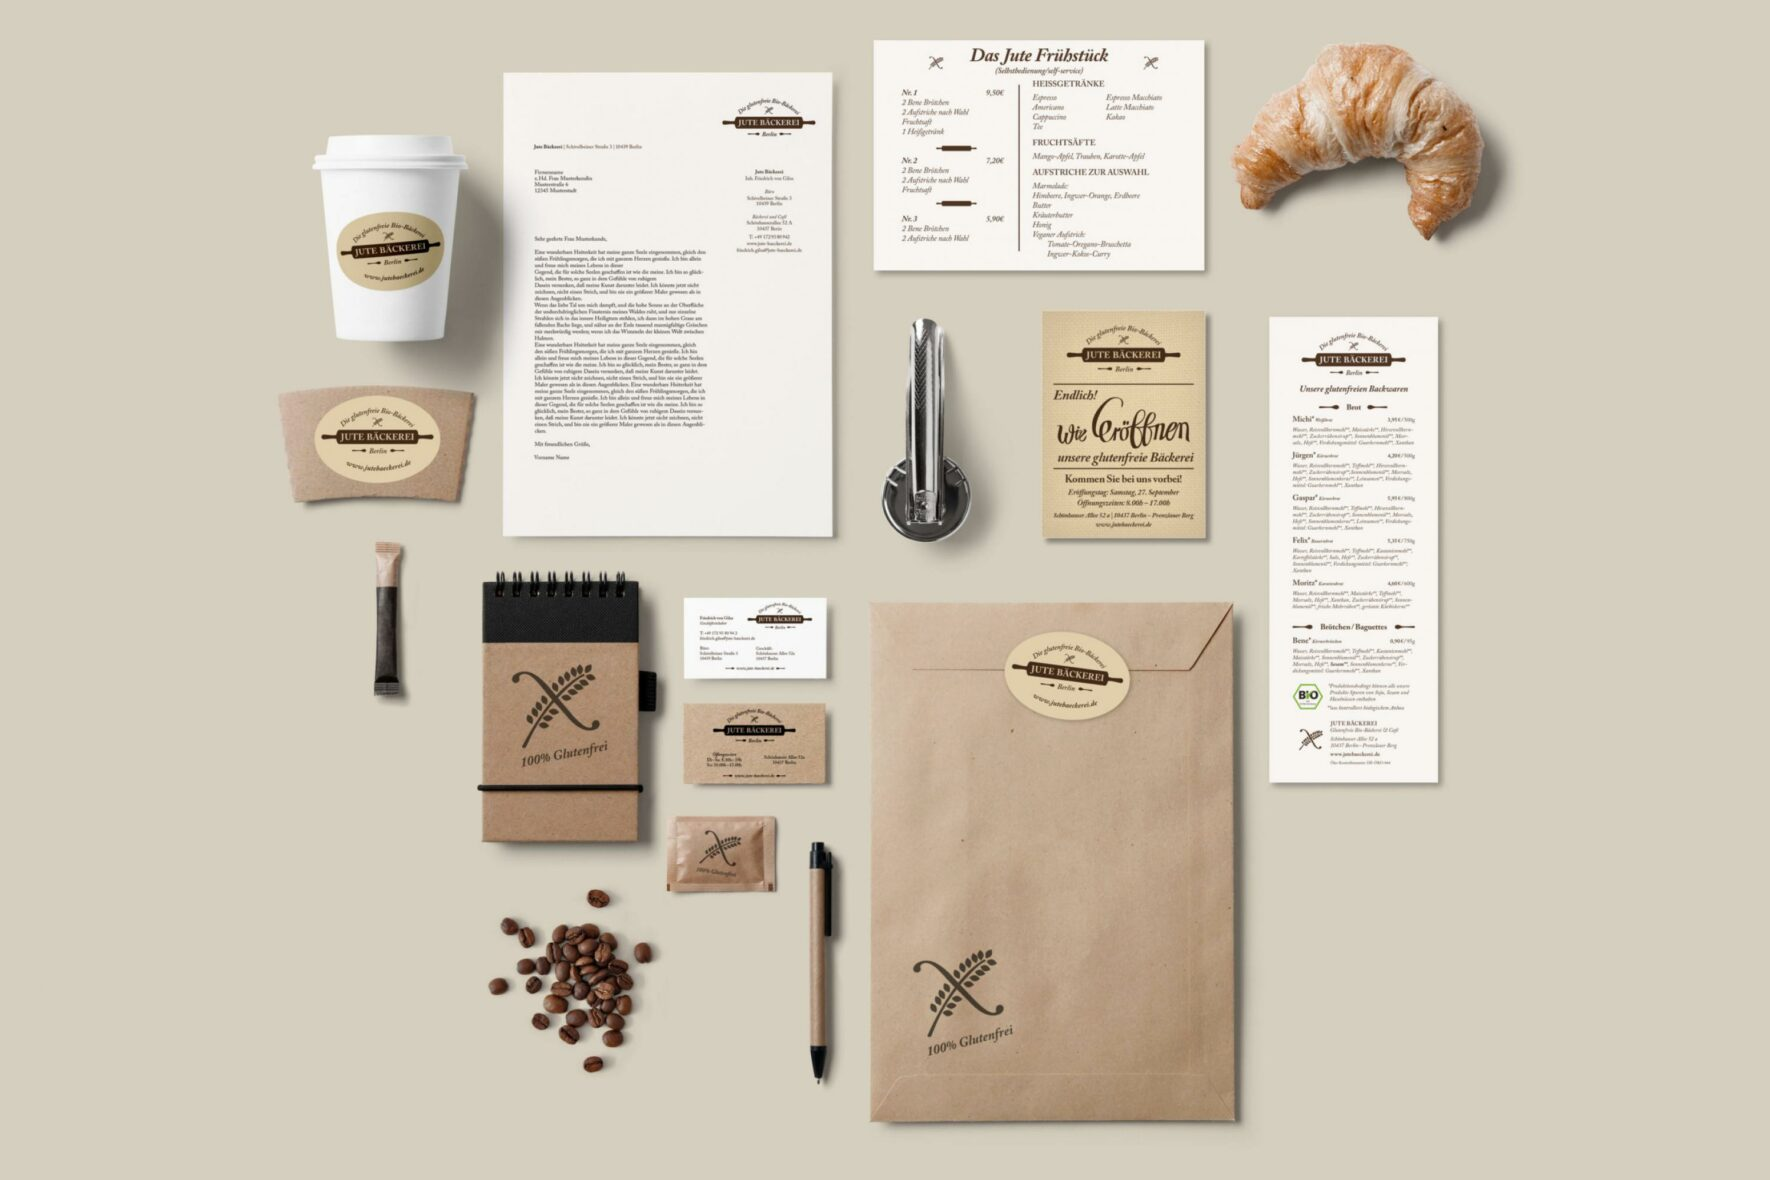 Glutenfreie-Bäckerei-Berlin-Jute-Bäckerei-Corporate-Design-01 Kopie